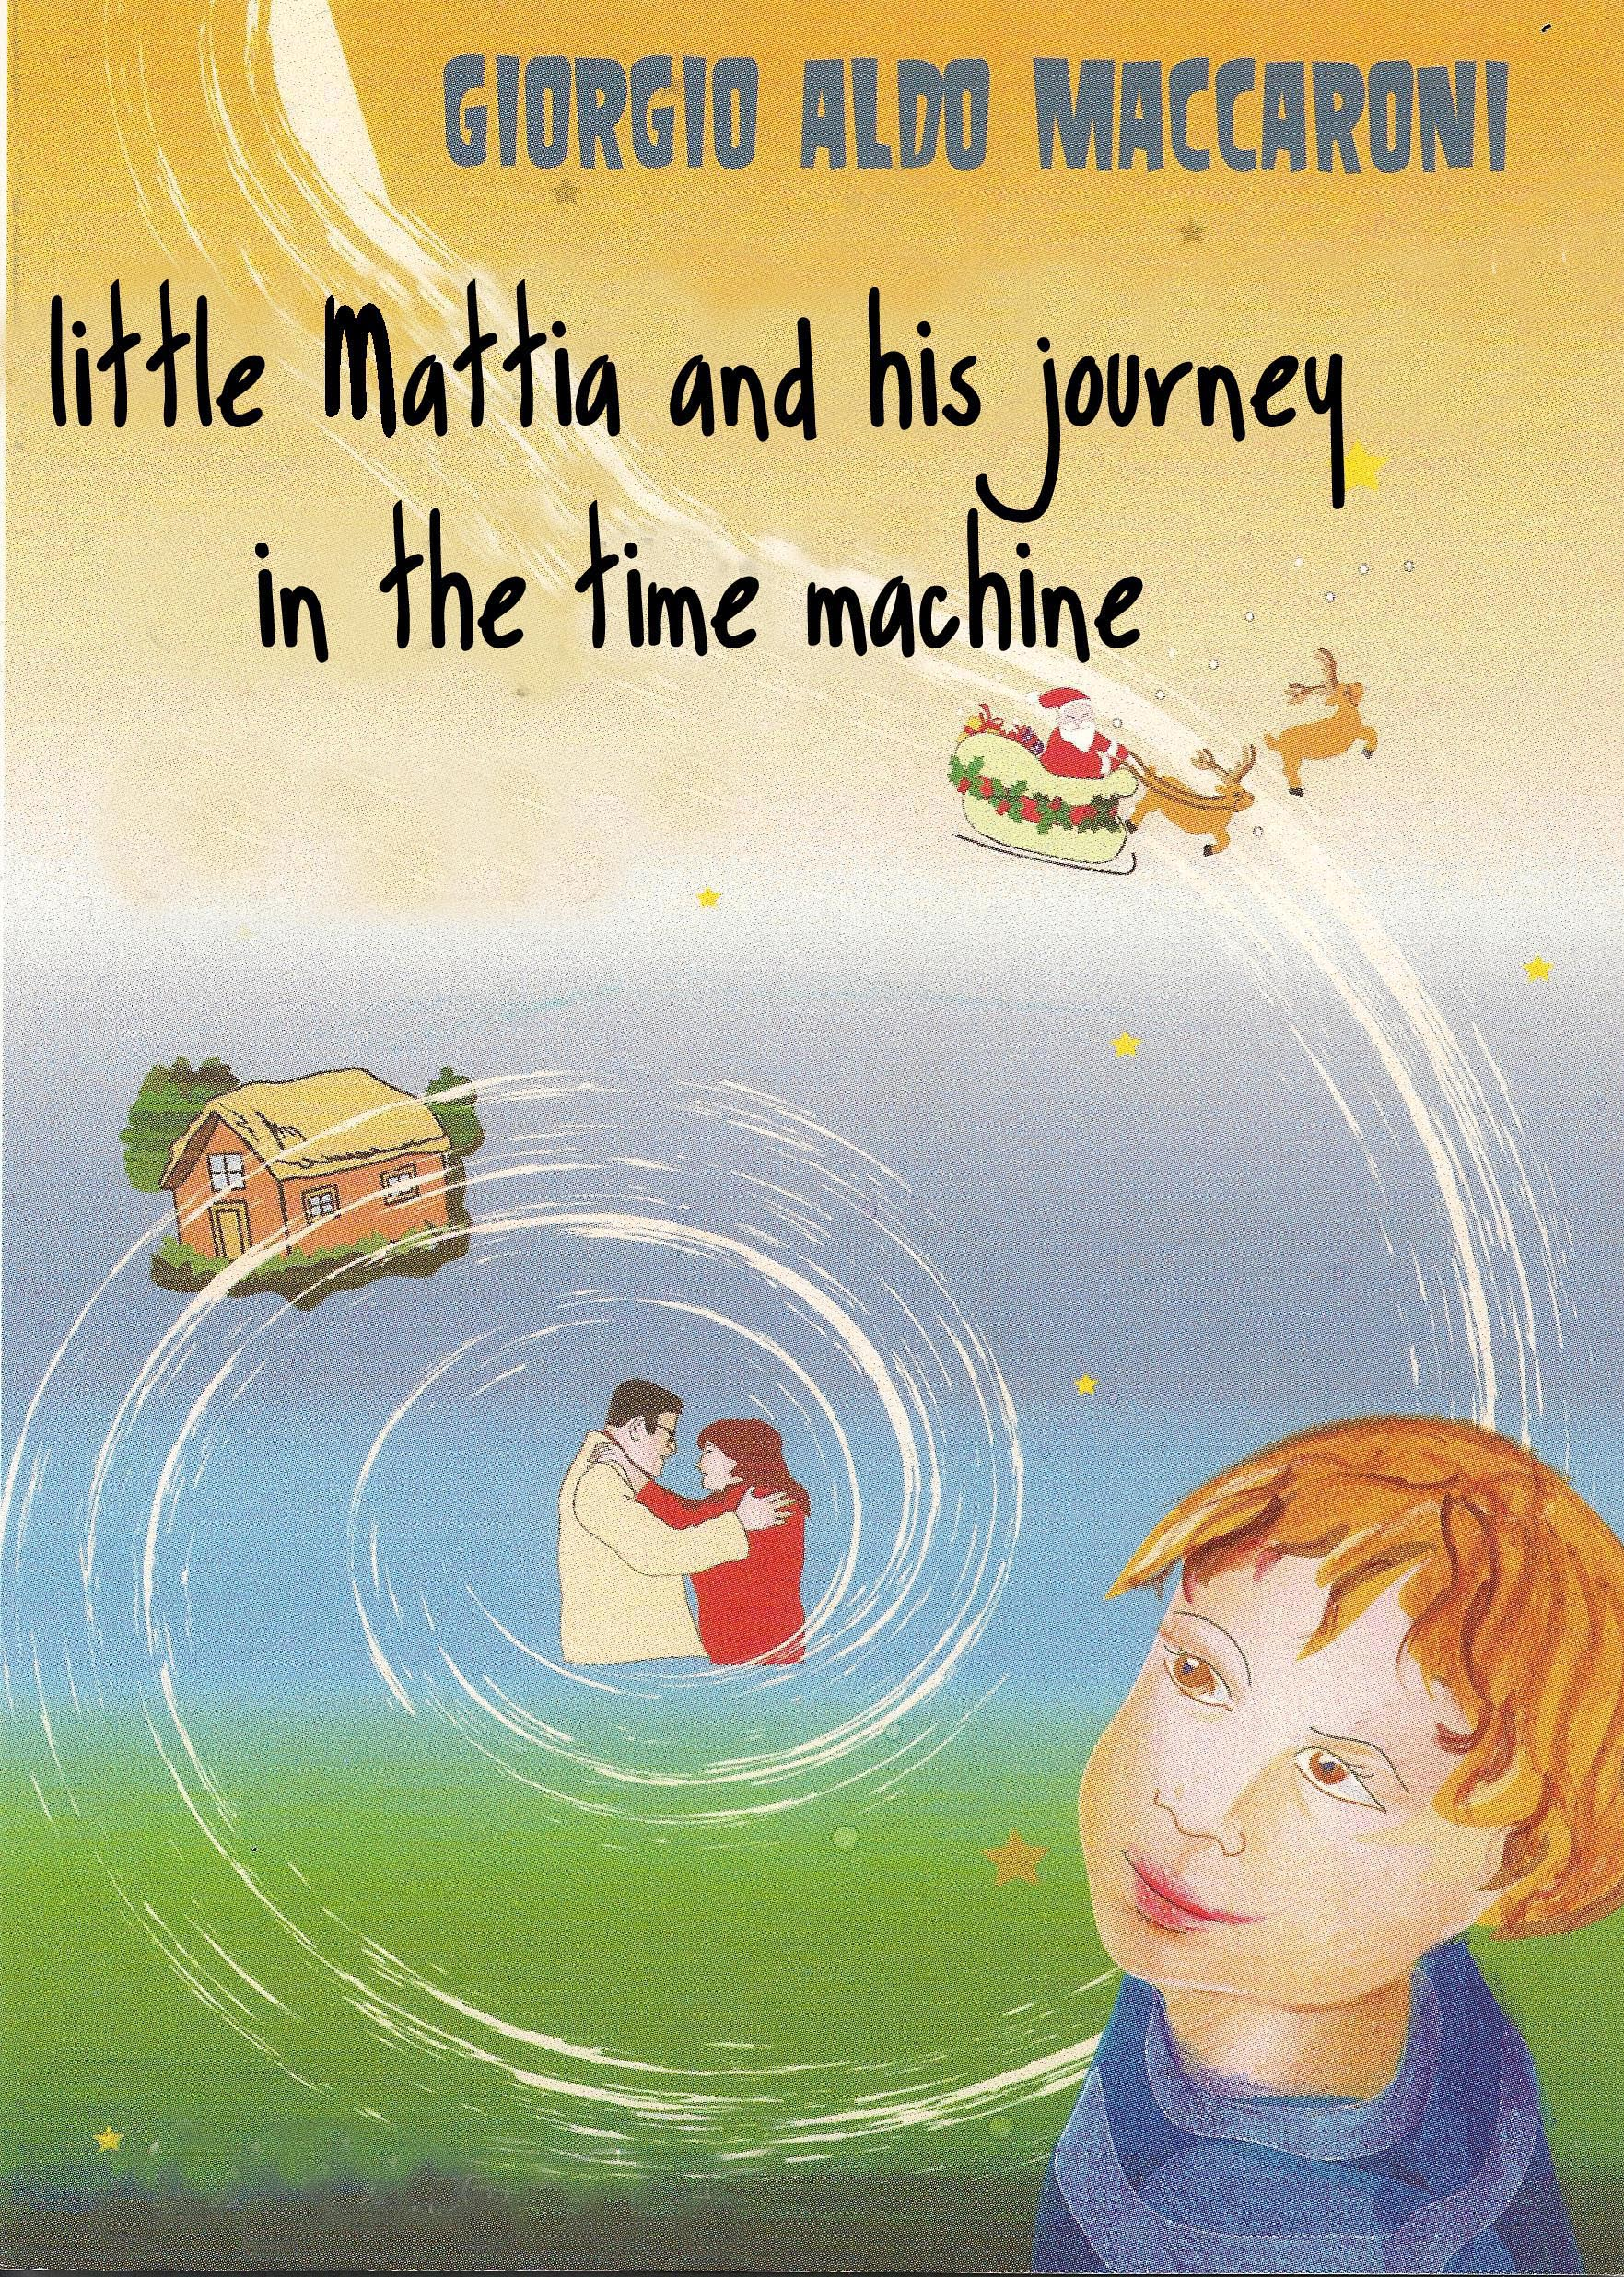 Little Mattia and his journey in the time machine